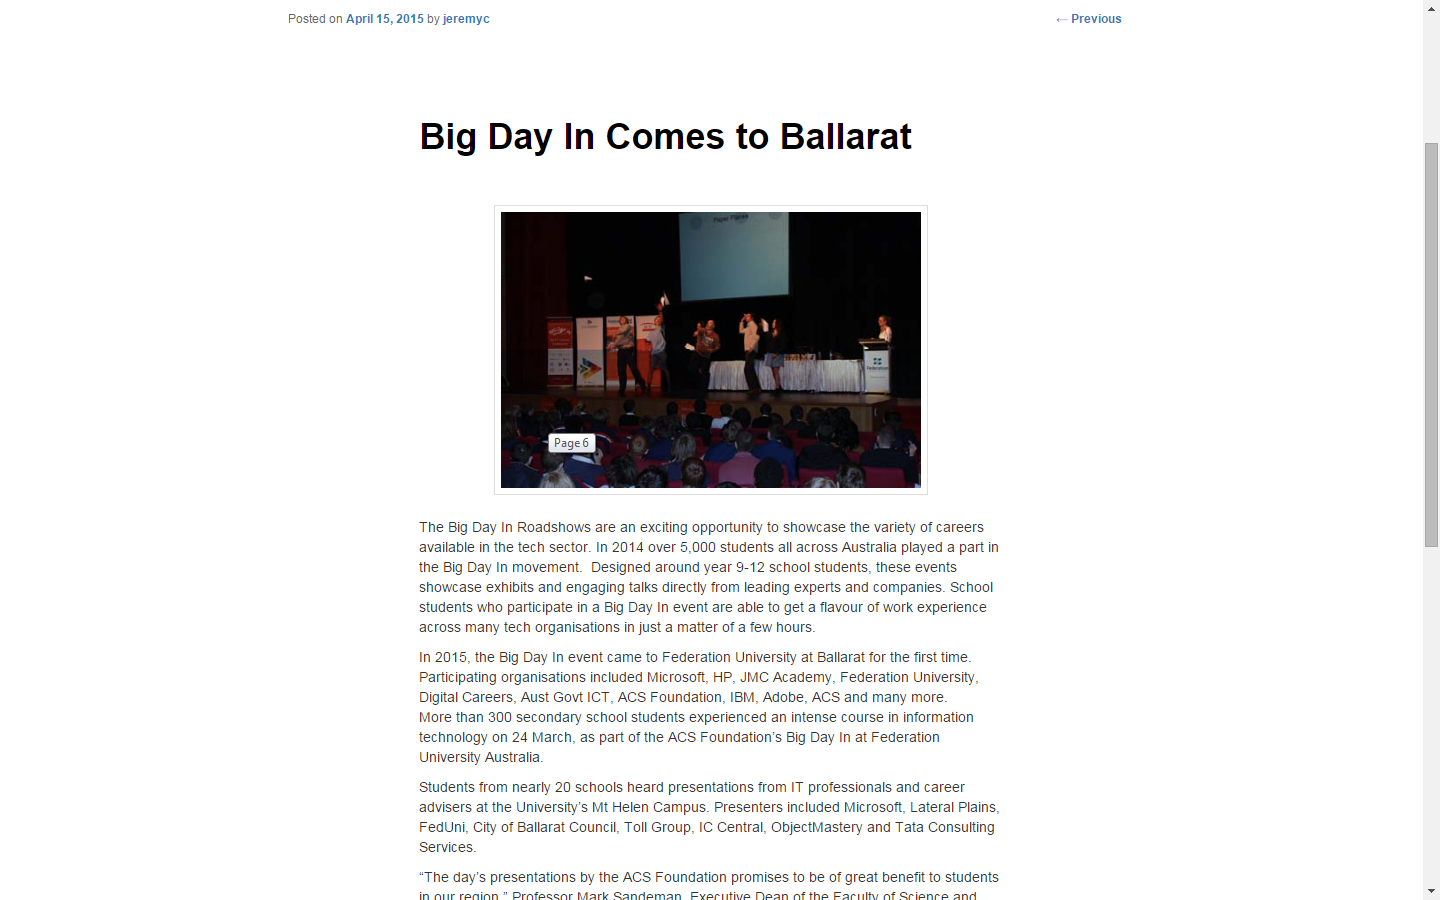 Big Day In Comes to Ballarat